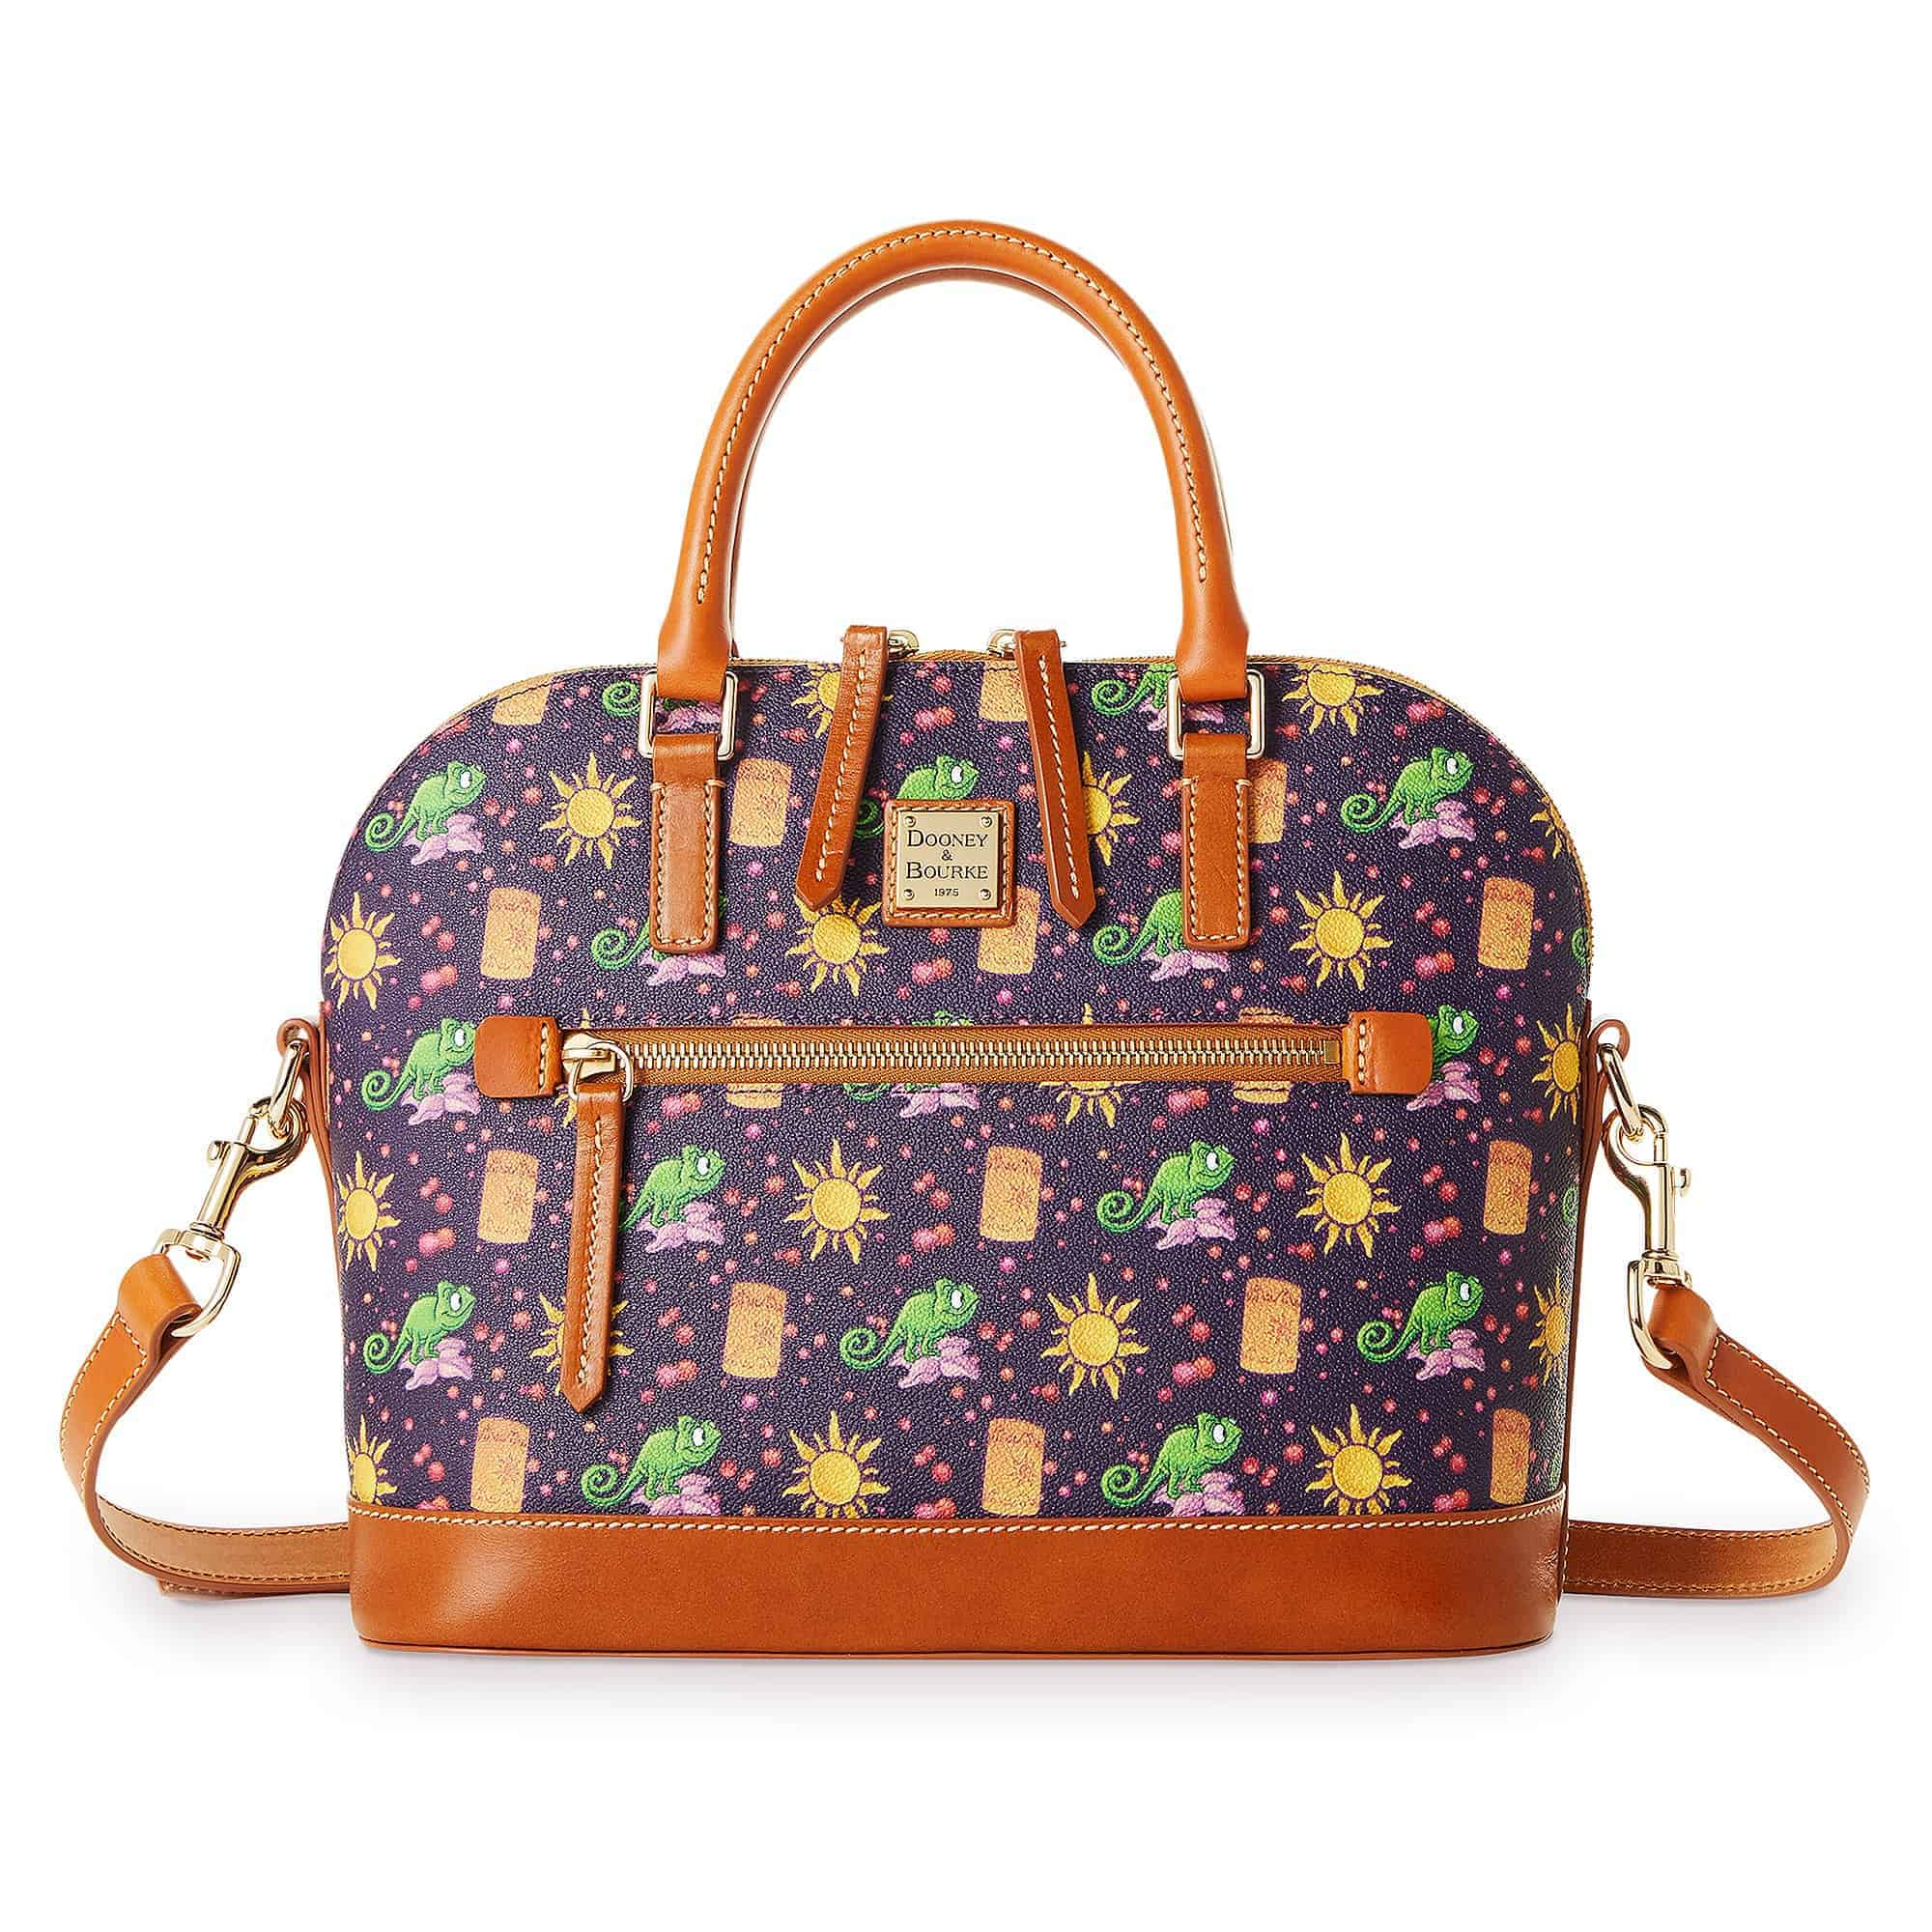 Tangled Satchel by Dooney & Bourke